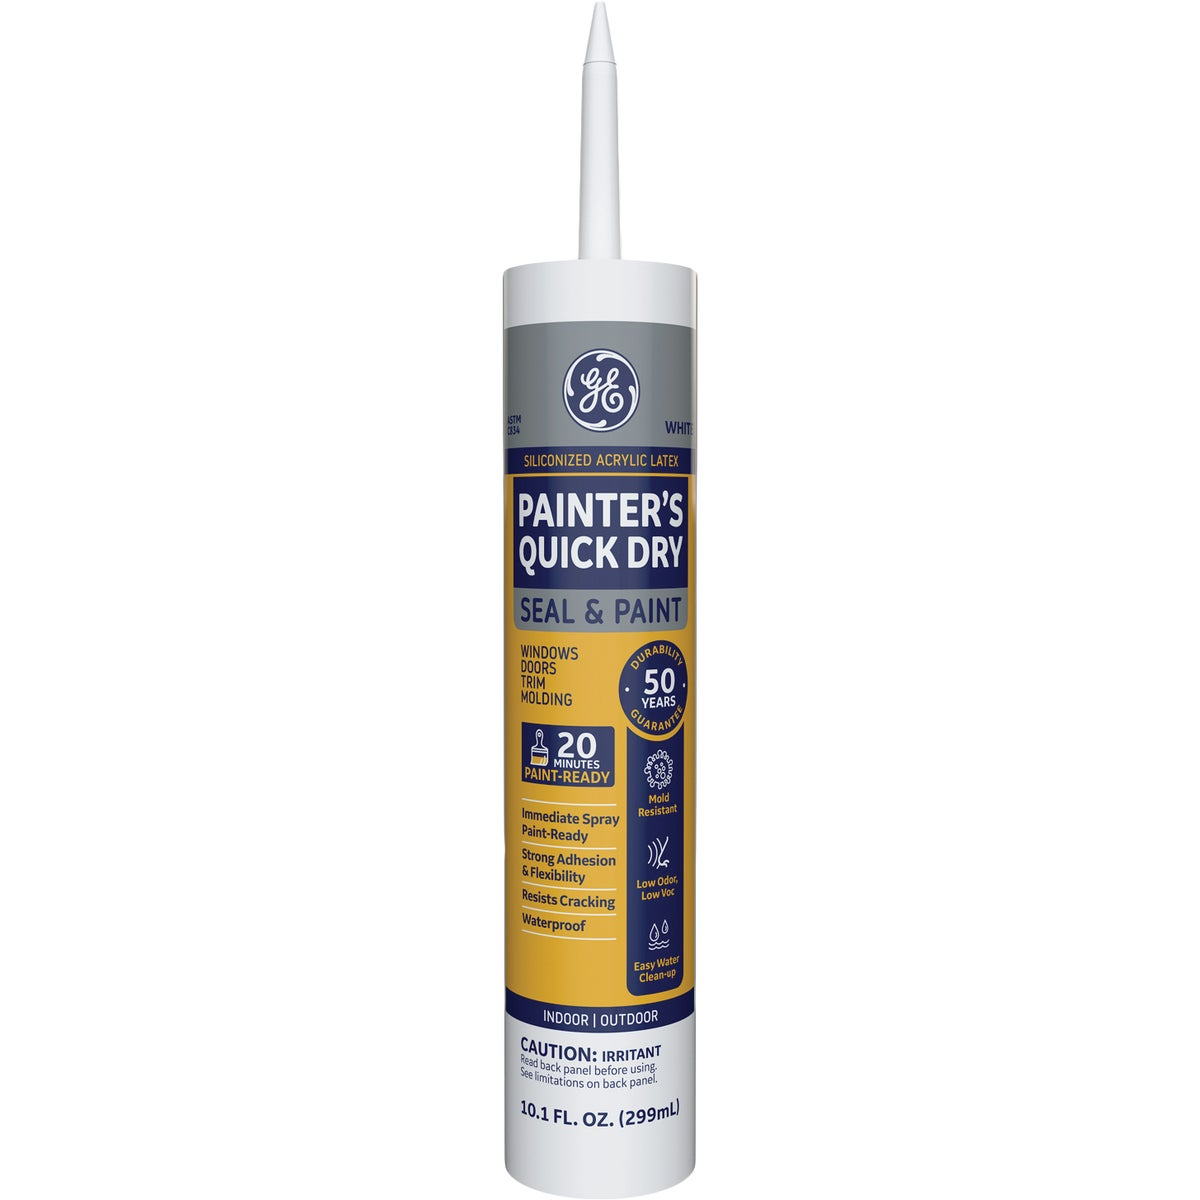 WHITE PAINTER'S CAULK